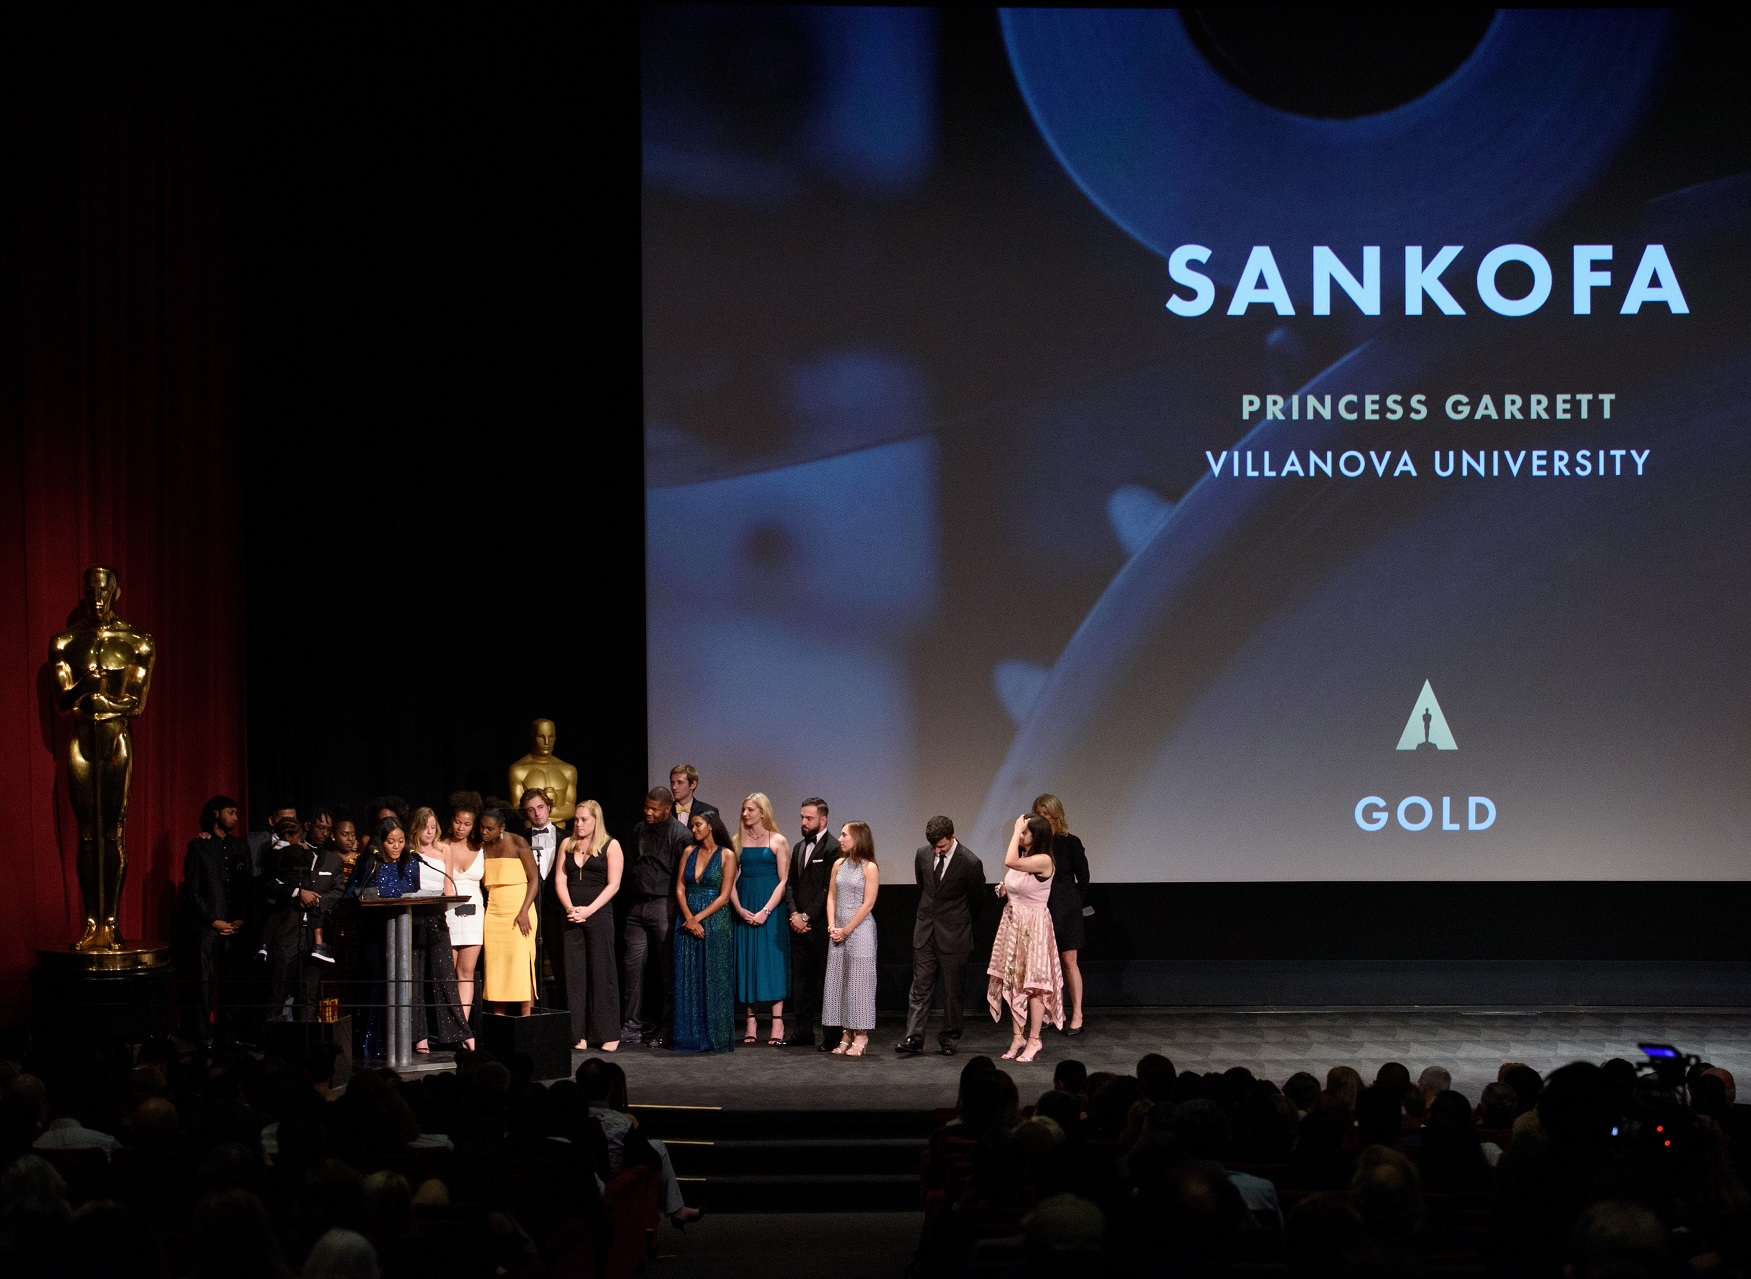 Villanova Social Justice Documentary, Sankofa, Takes Home Gold Medal at Student Academy Awards